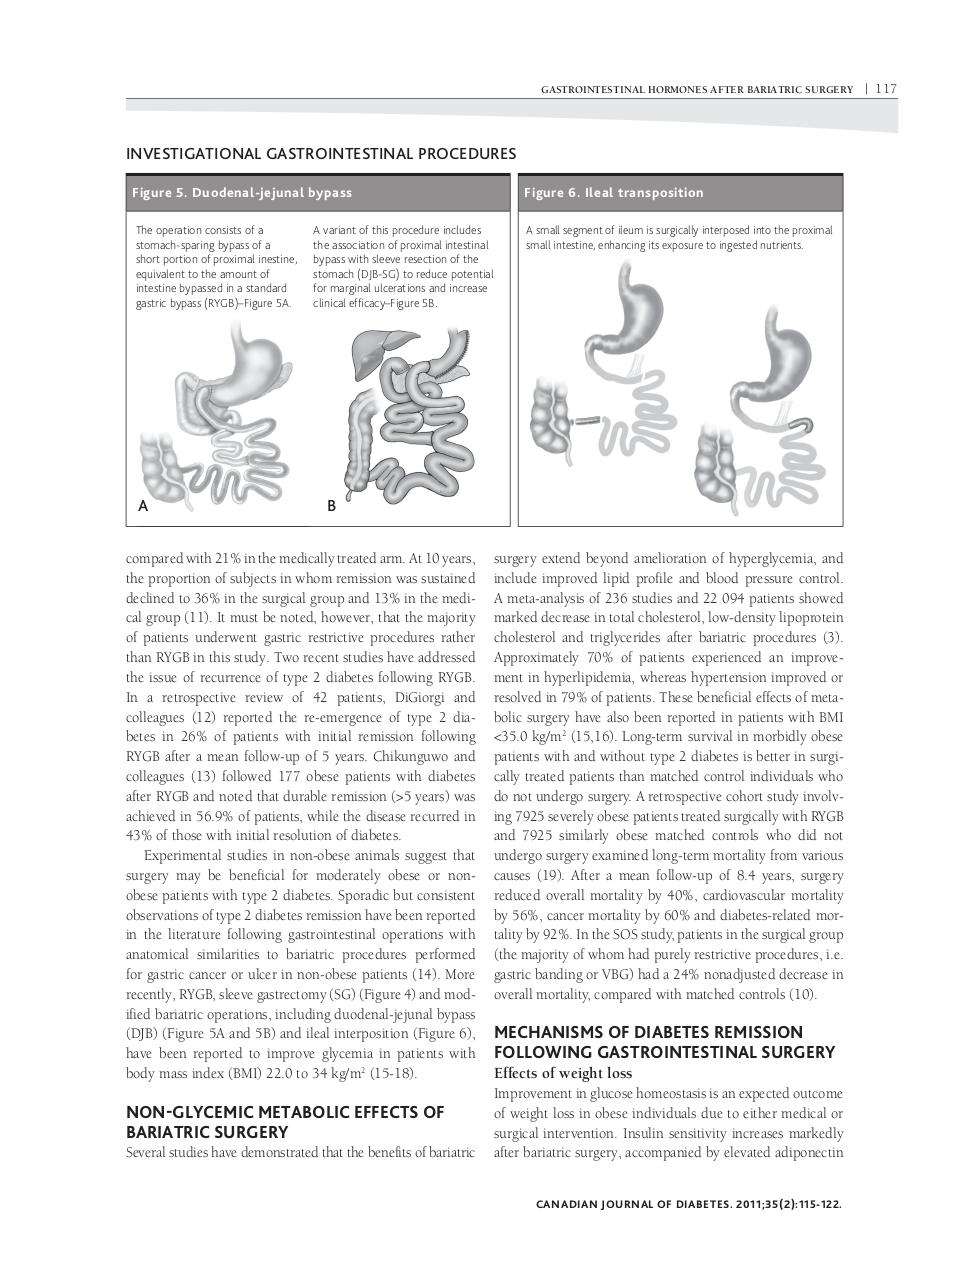 gastrointestinal hormone after bariatric surgery.pdf - page 3/8